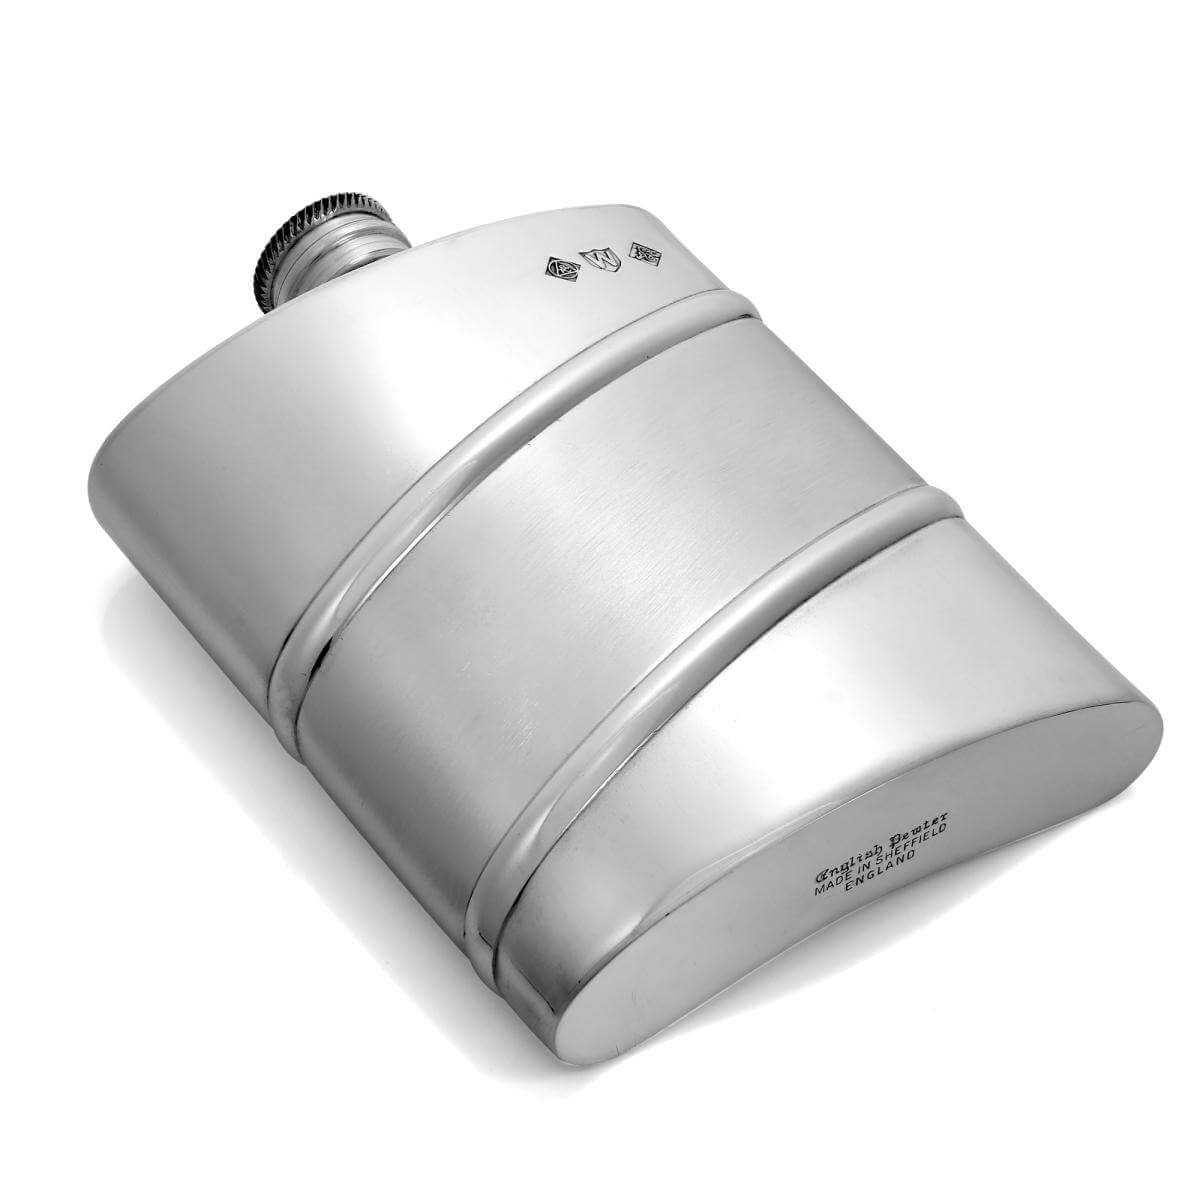 6oz Handmade Pewter Hip Flask with Diagonal Satin Band